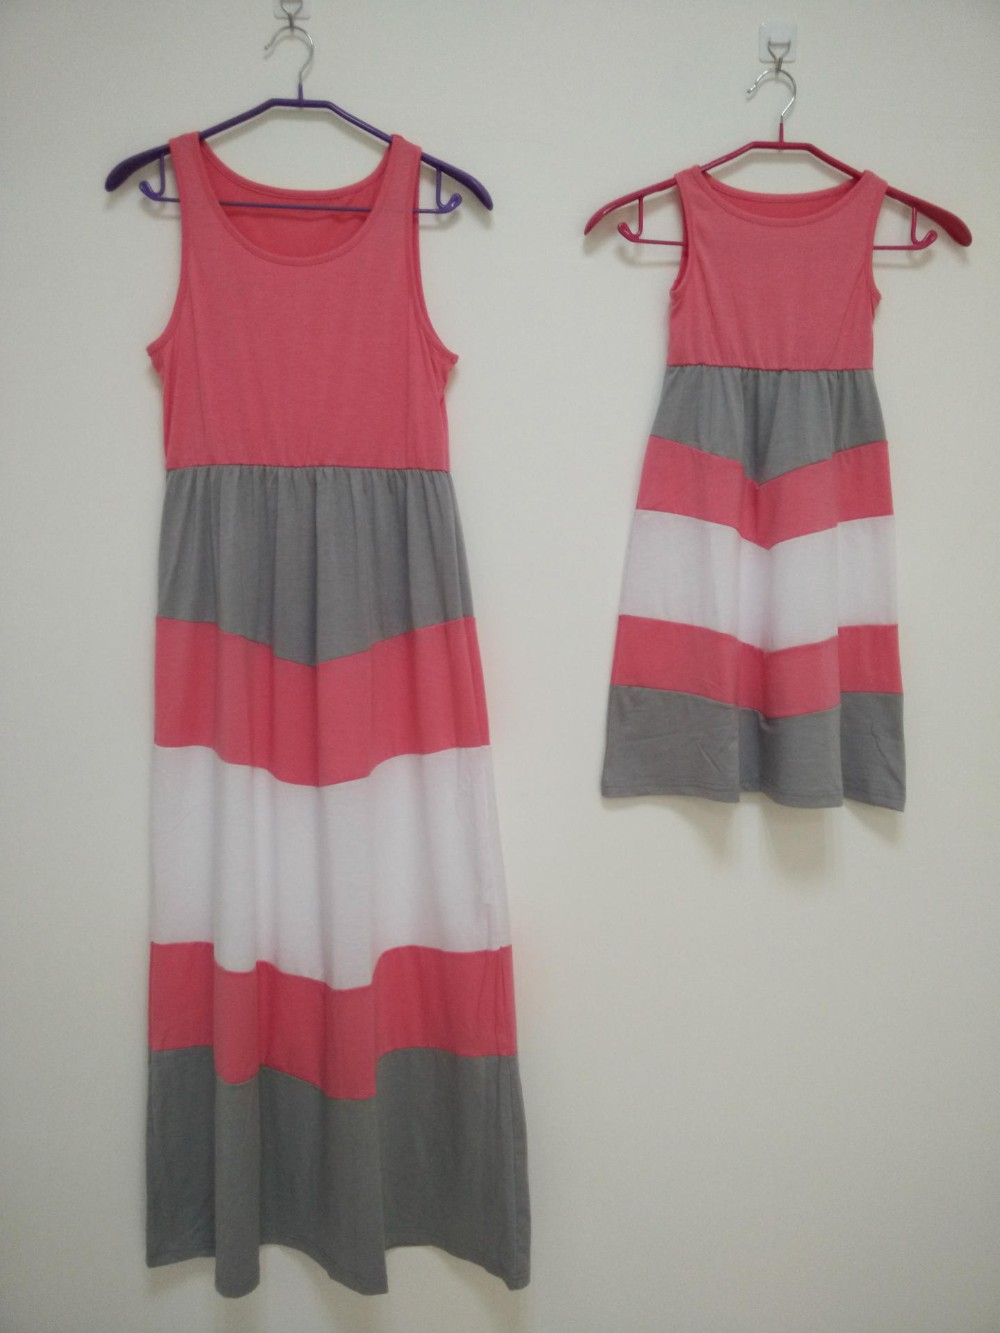 mother daughter dresses (10)